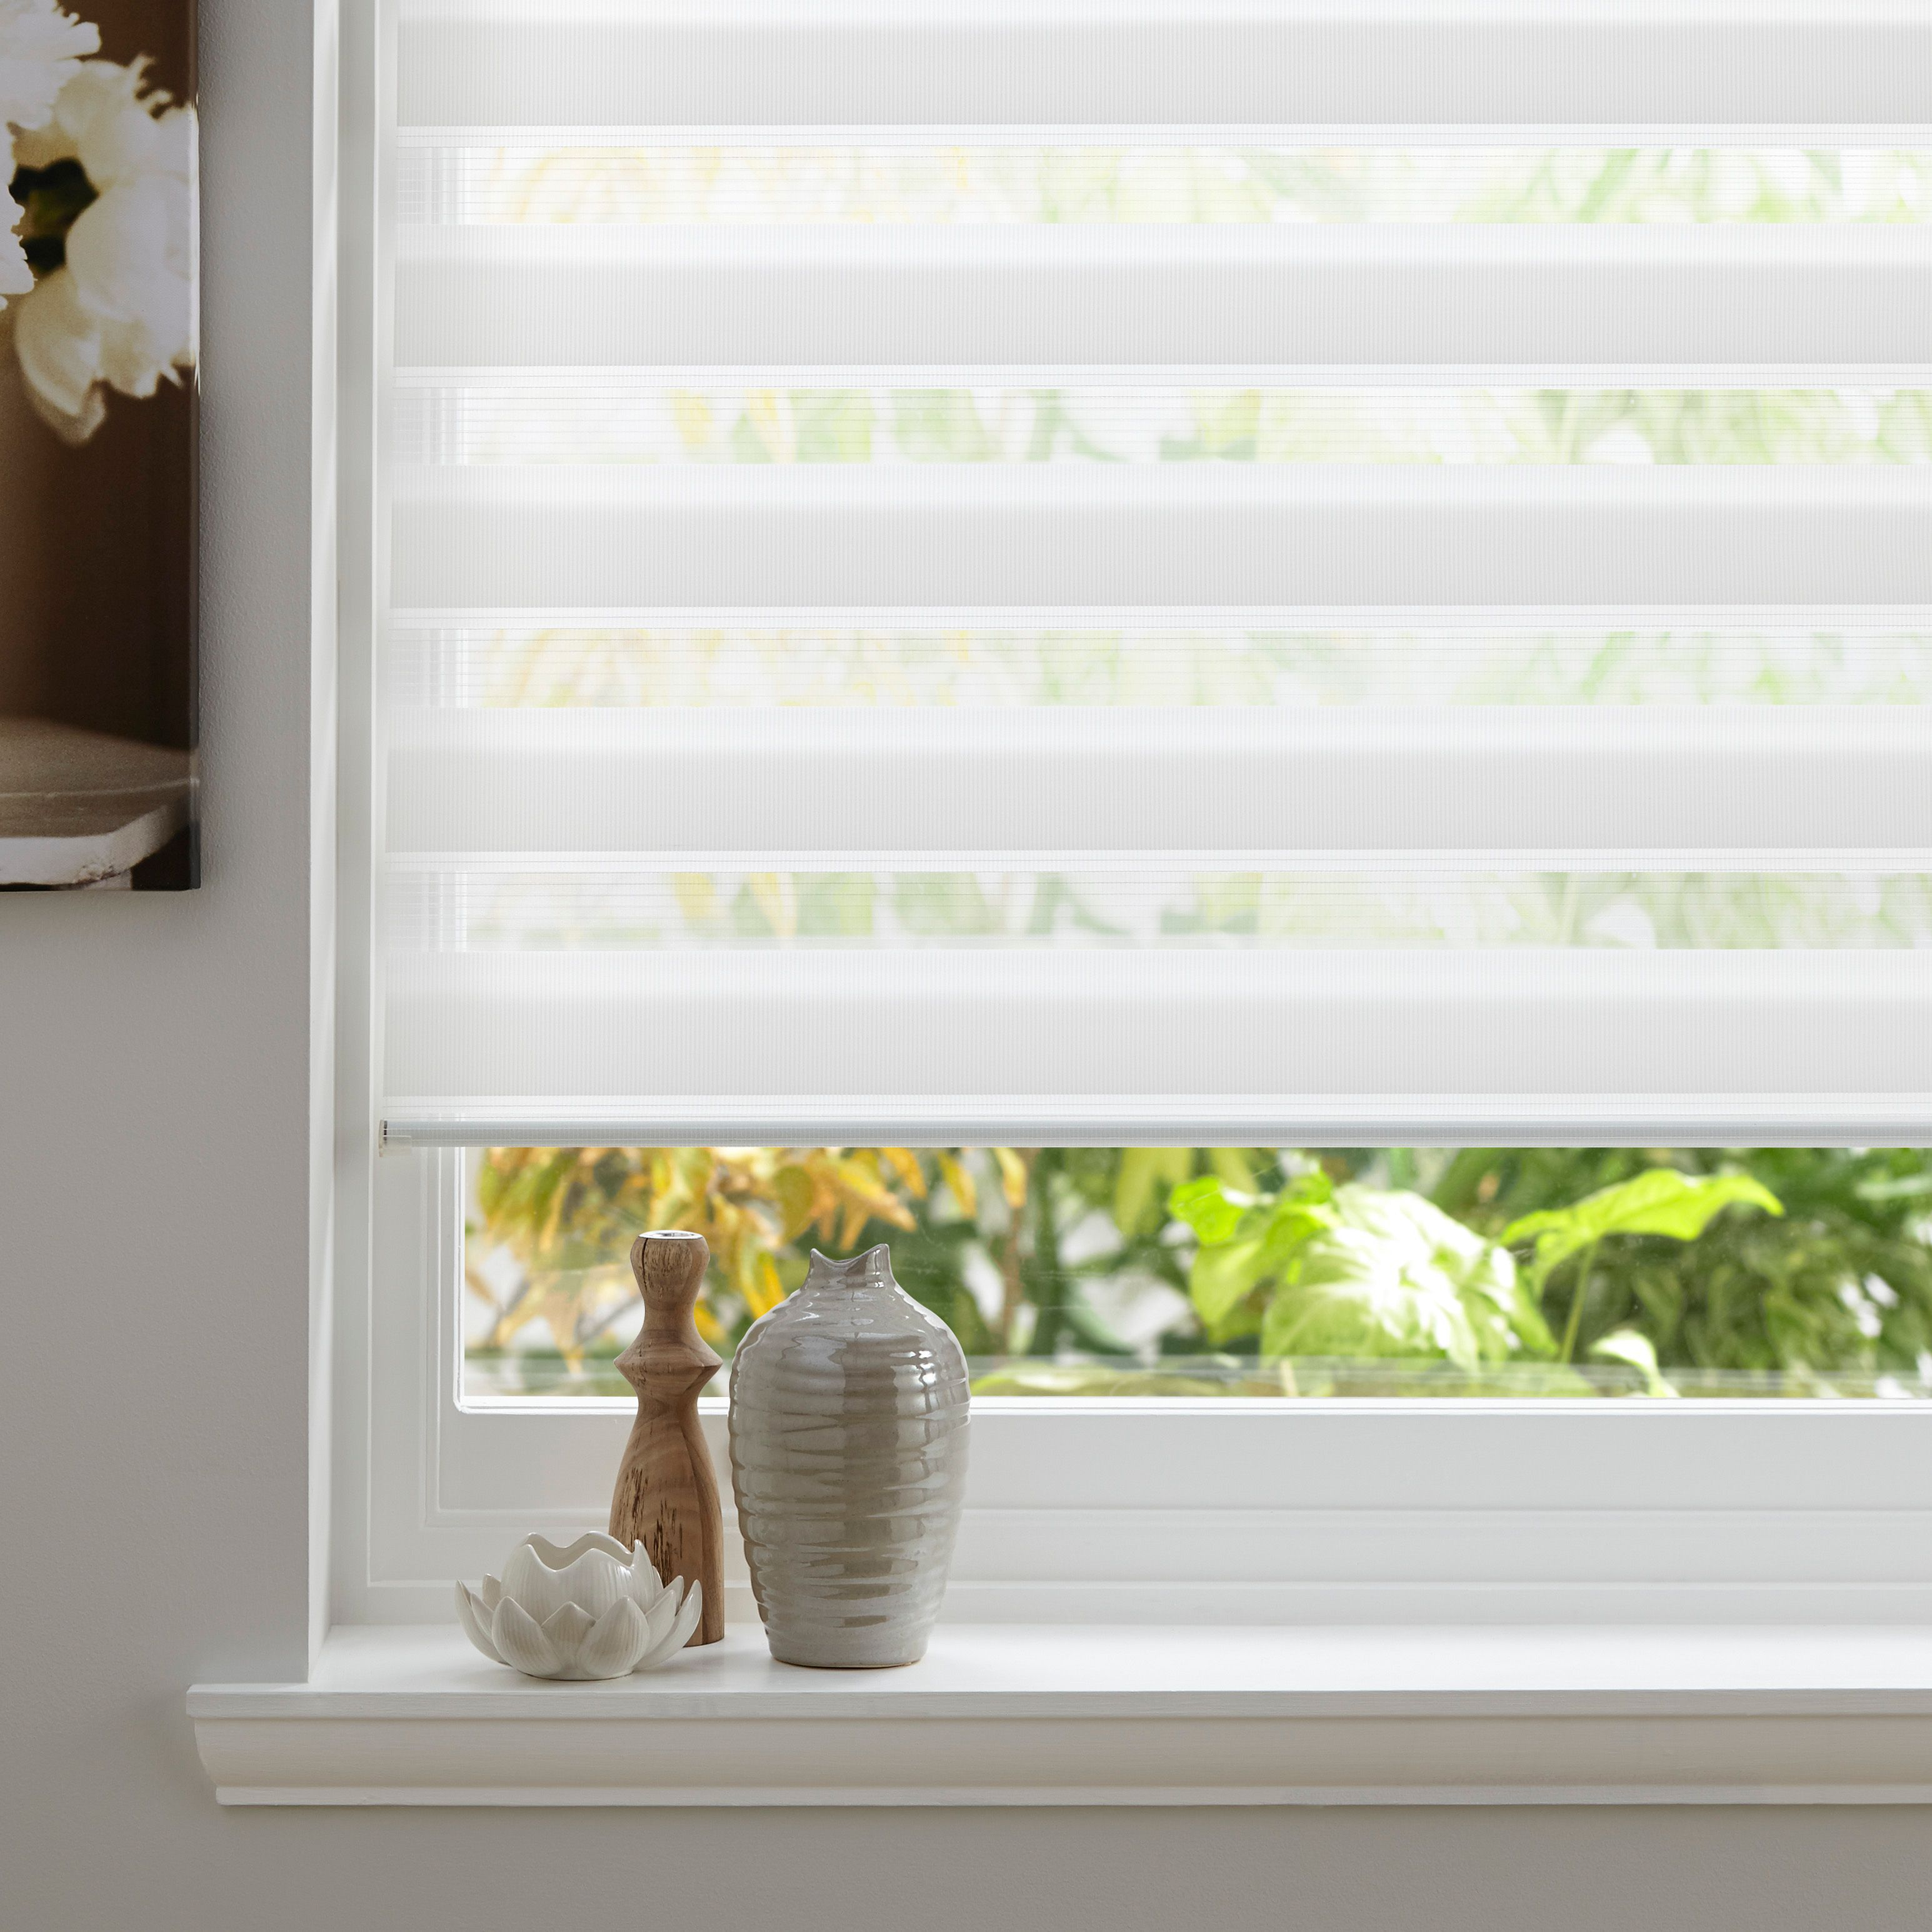 Colours Day & Night Corded White Roller Blind (l)160 Cm (w)60 Cm